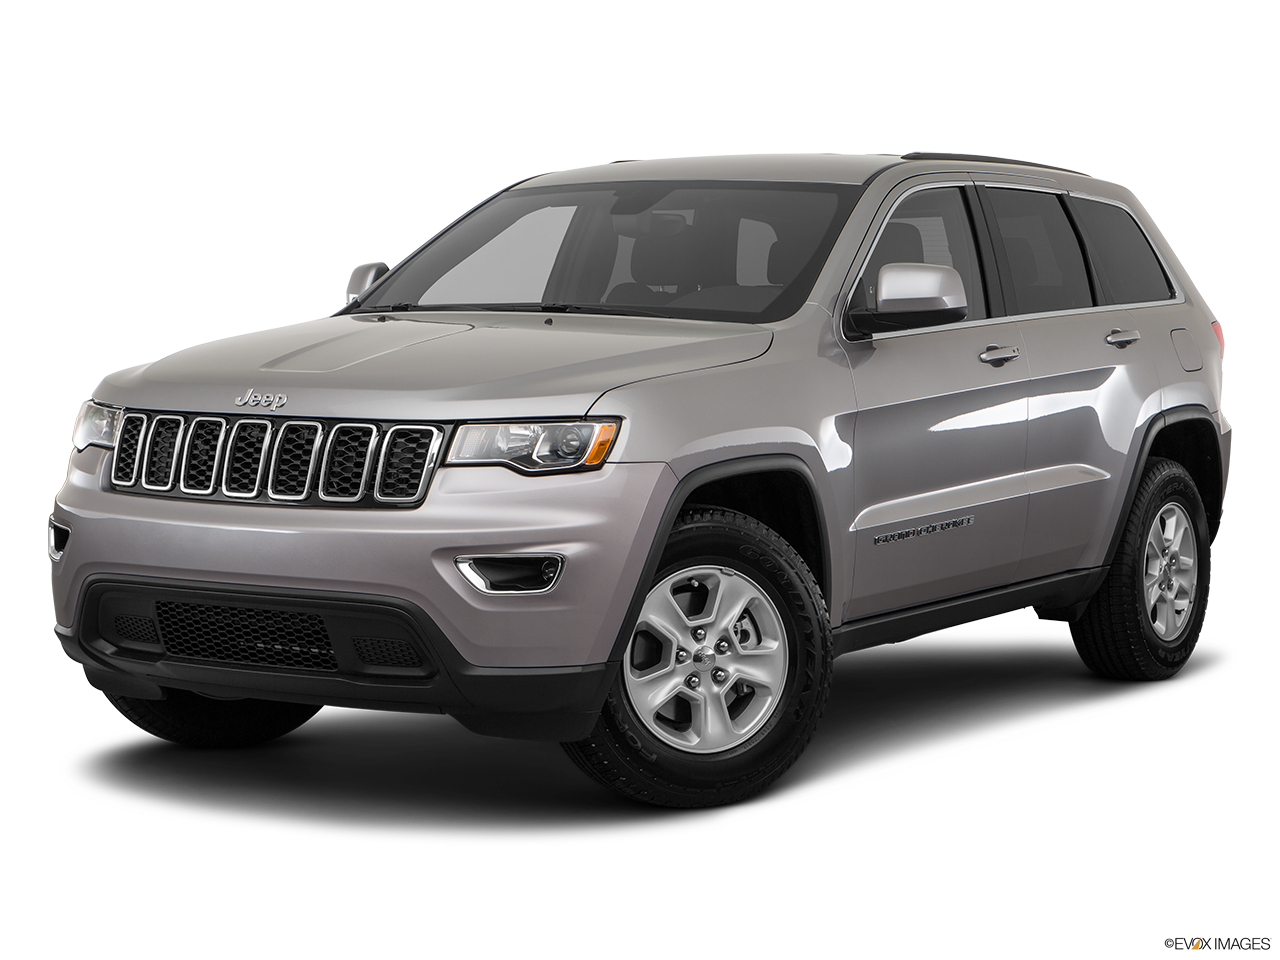 Test Drive A 2017 Jeep Grand Cherokee at Sherman Dodge Chrysler Jeep RAM Chicago